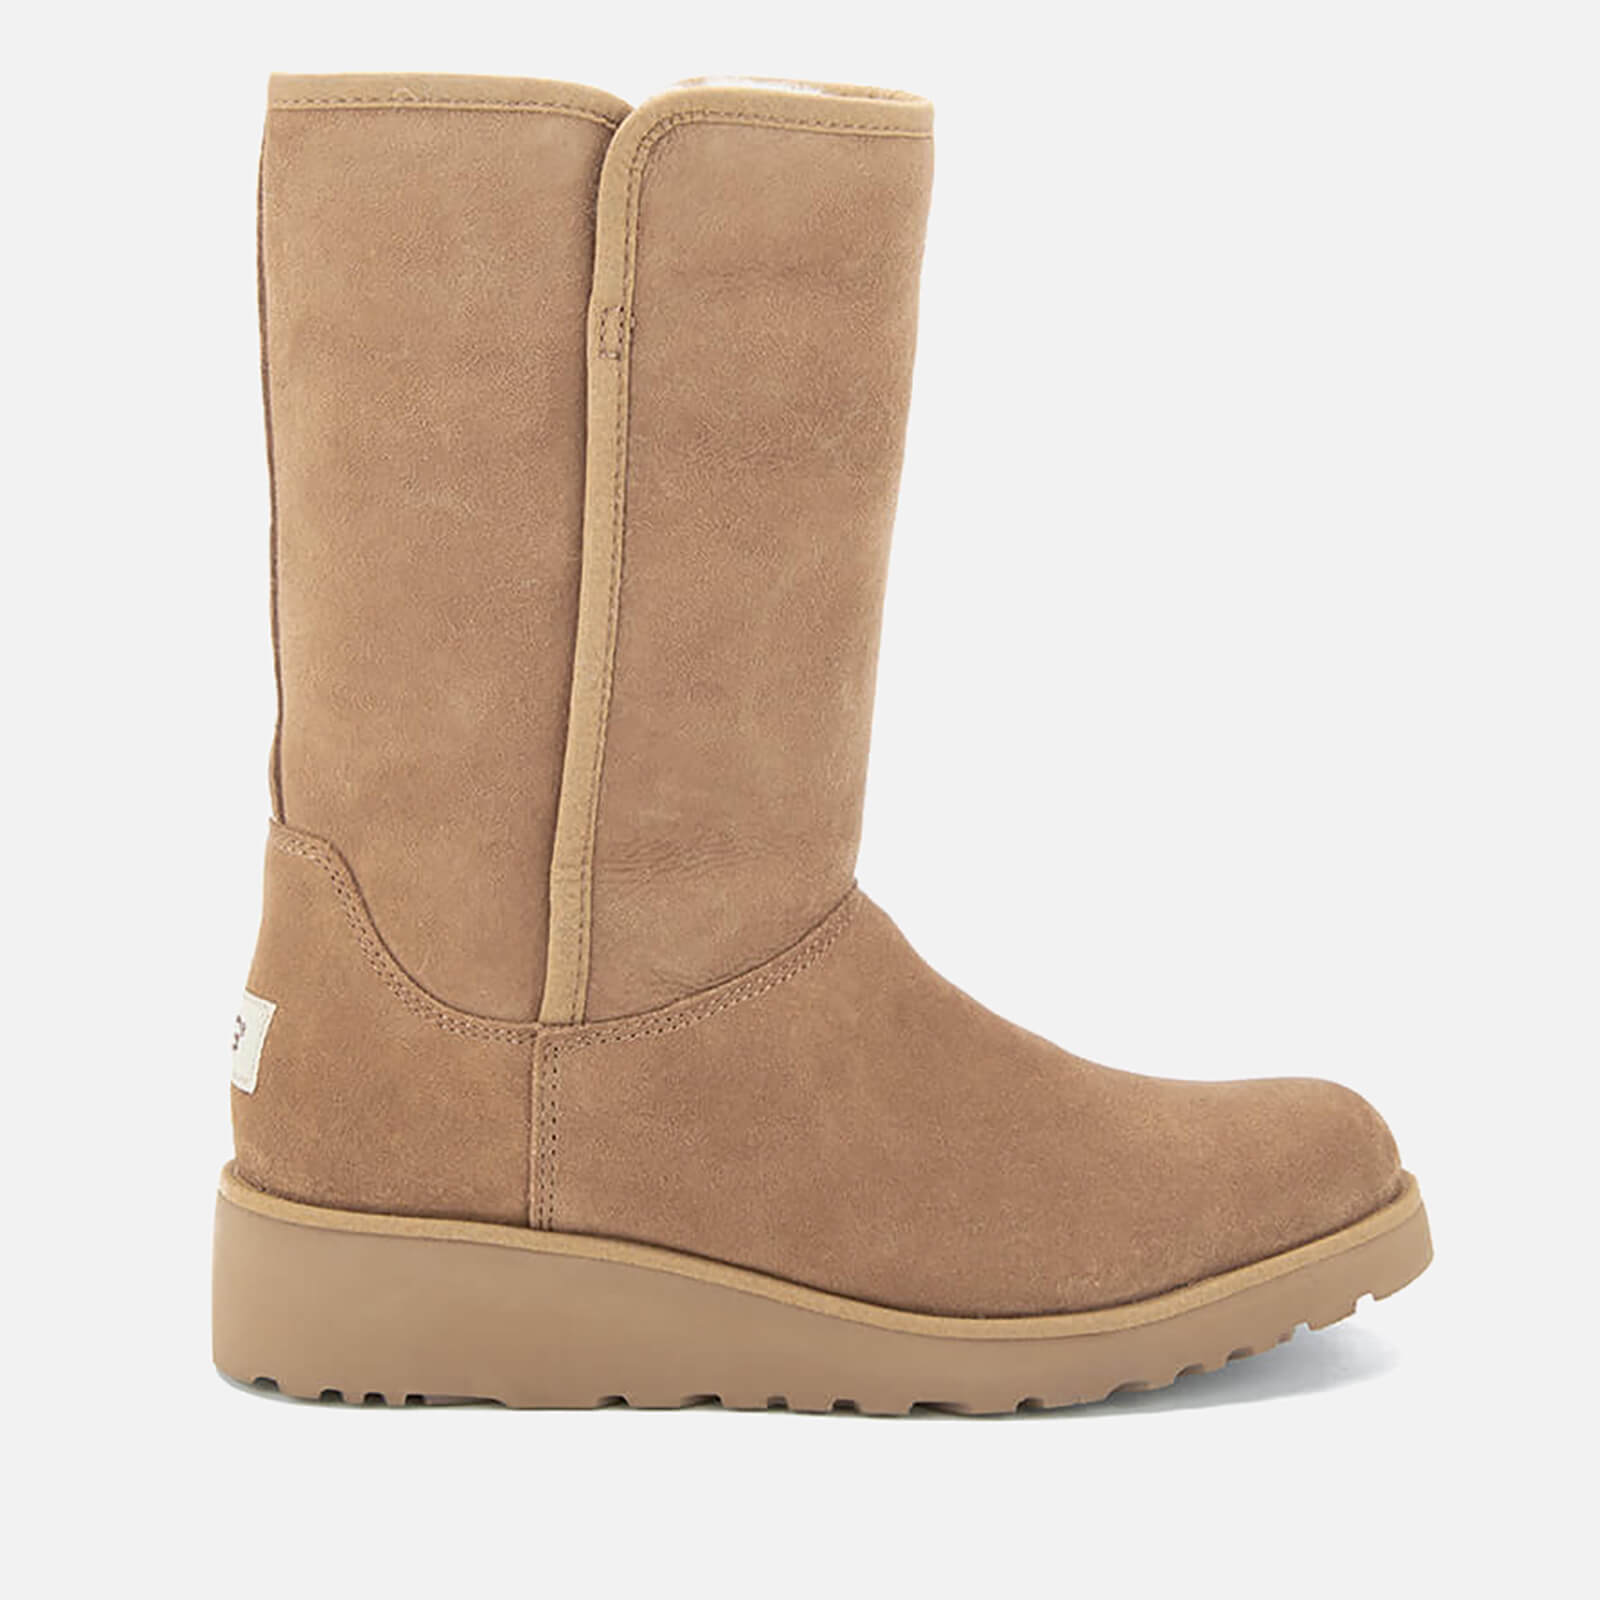 1efb41dc9 UGG Women s Amie Classic Slim Sheepskin Boots - Chestnut - Free UK Delivery  over £50